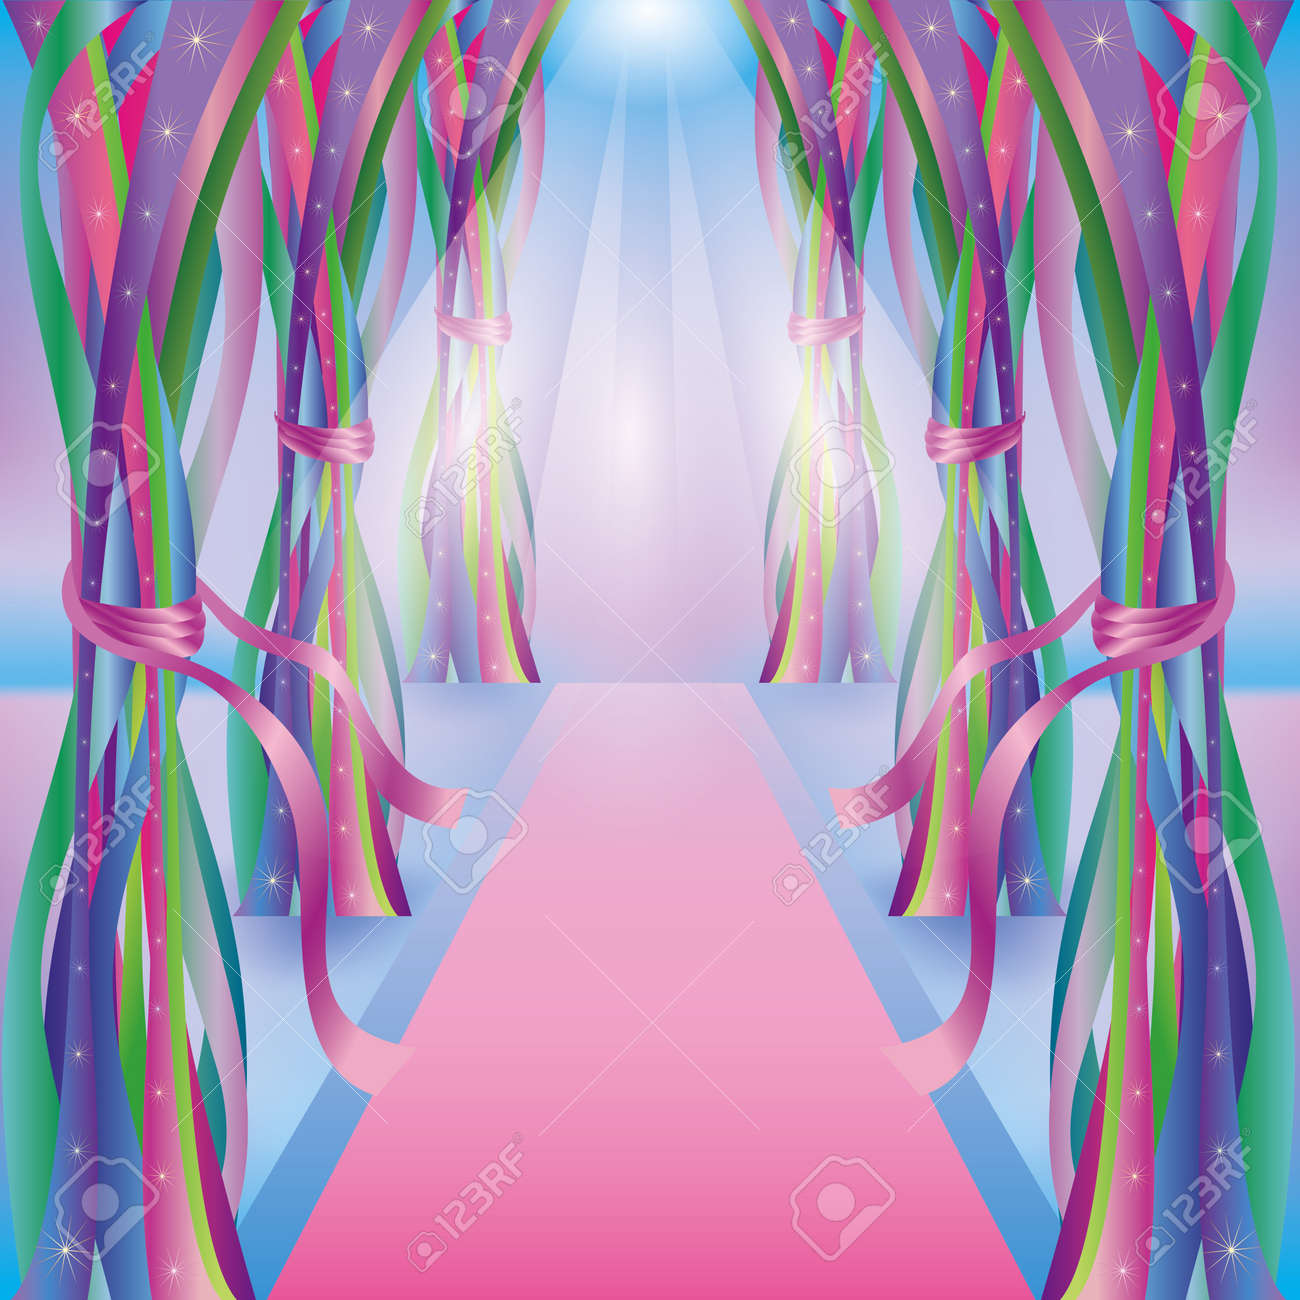 Abstract bright background with decorations, colorful ribbons and carpet Stock Vector - 14365361